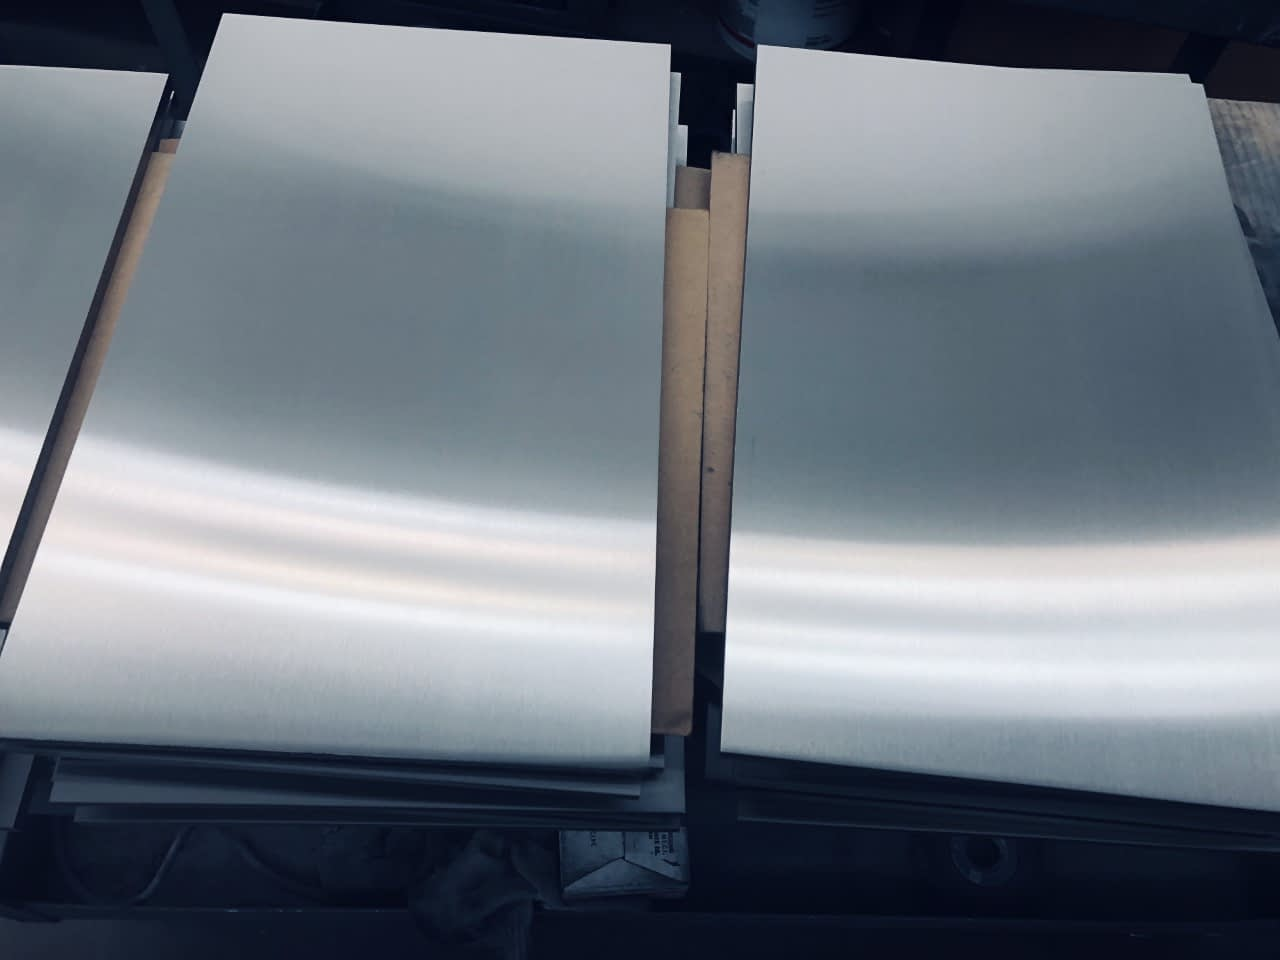 Line Grain stainless steel sheets